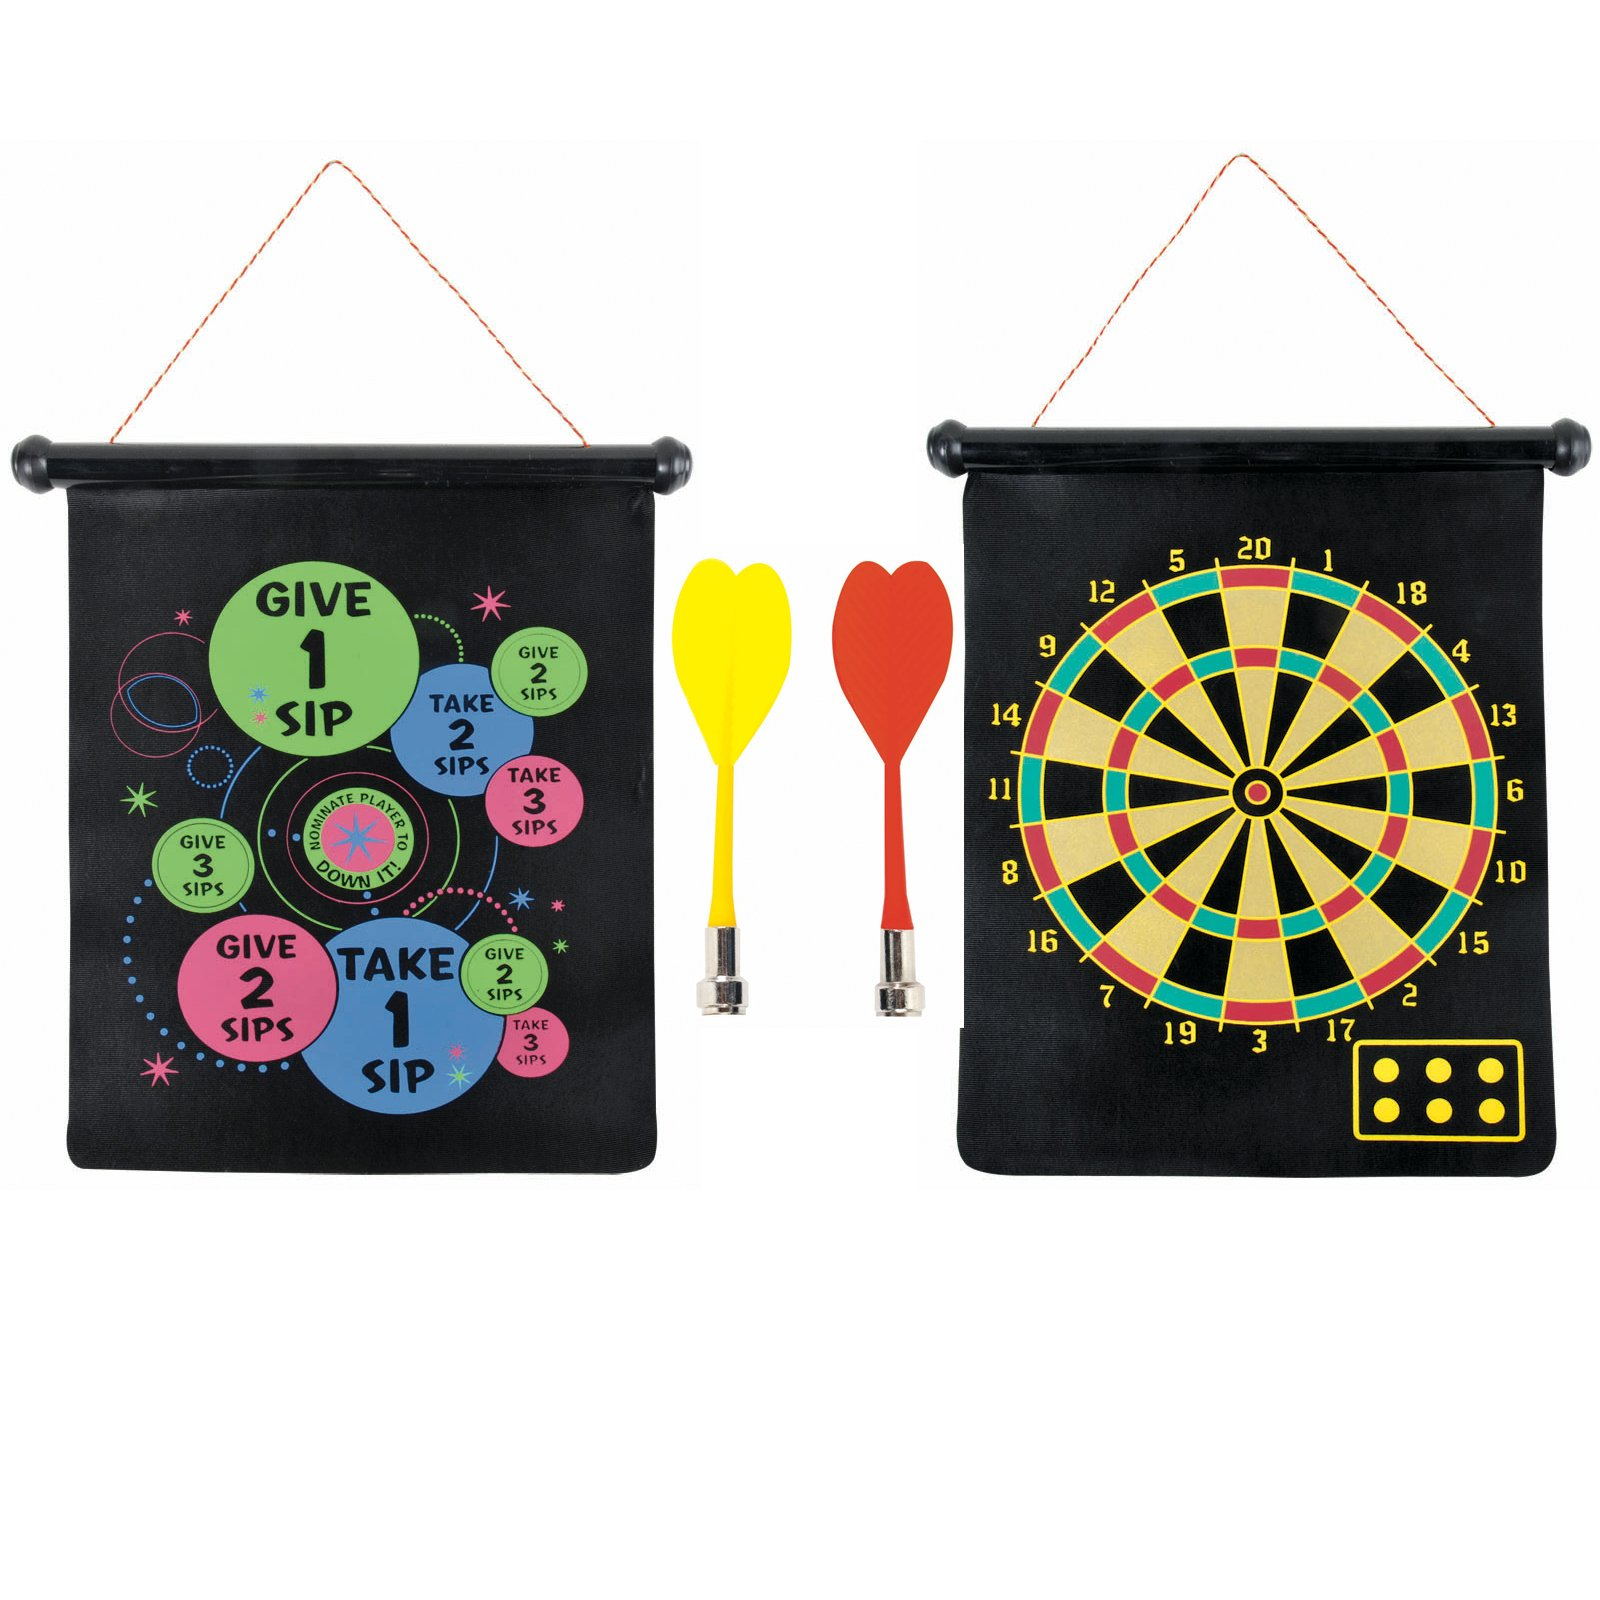 Magnetic Adult Dart Board (2 sided)